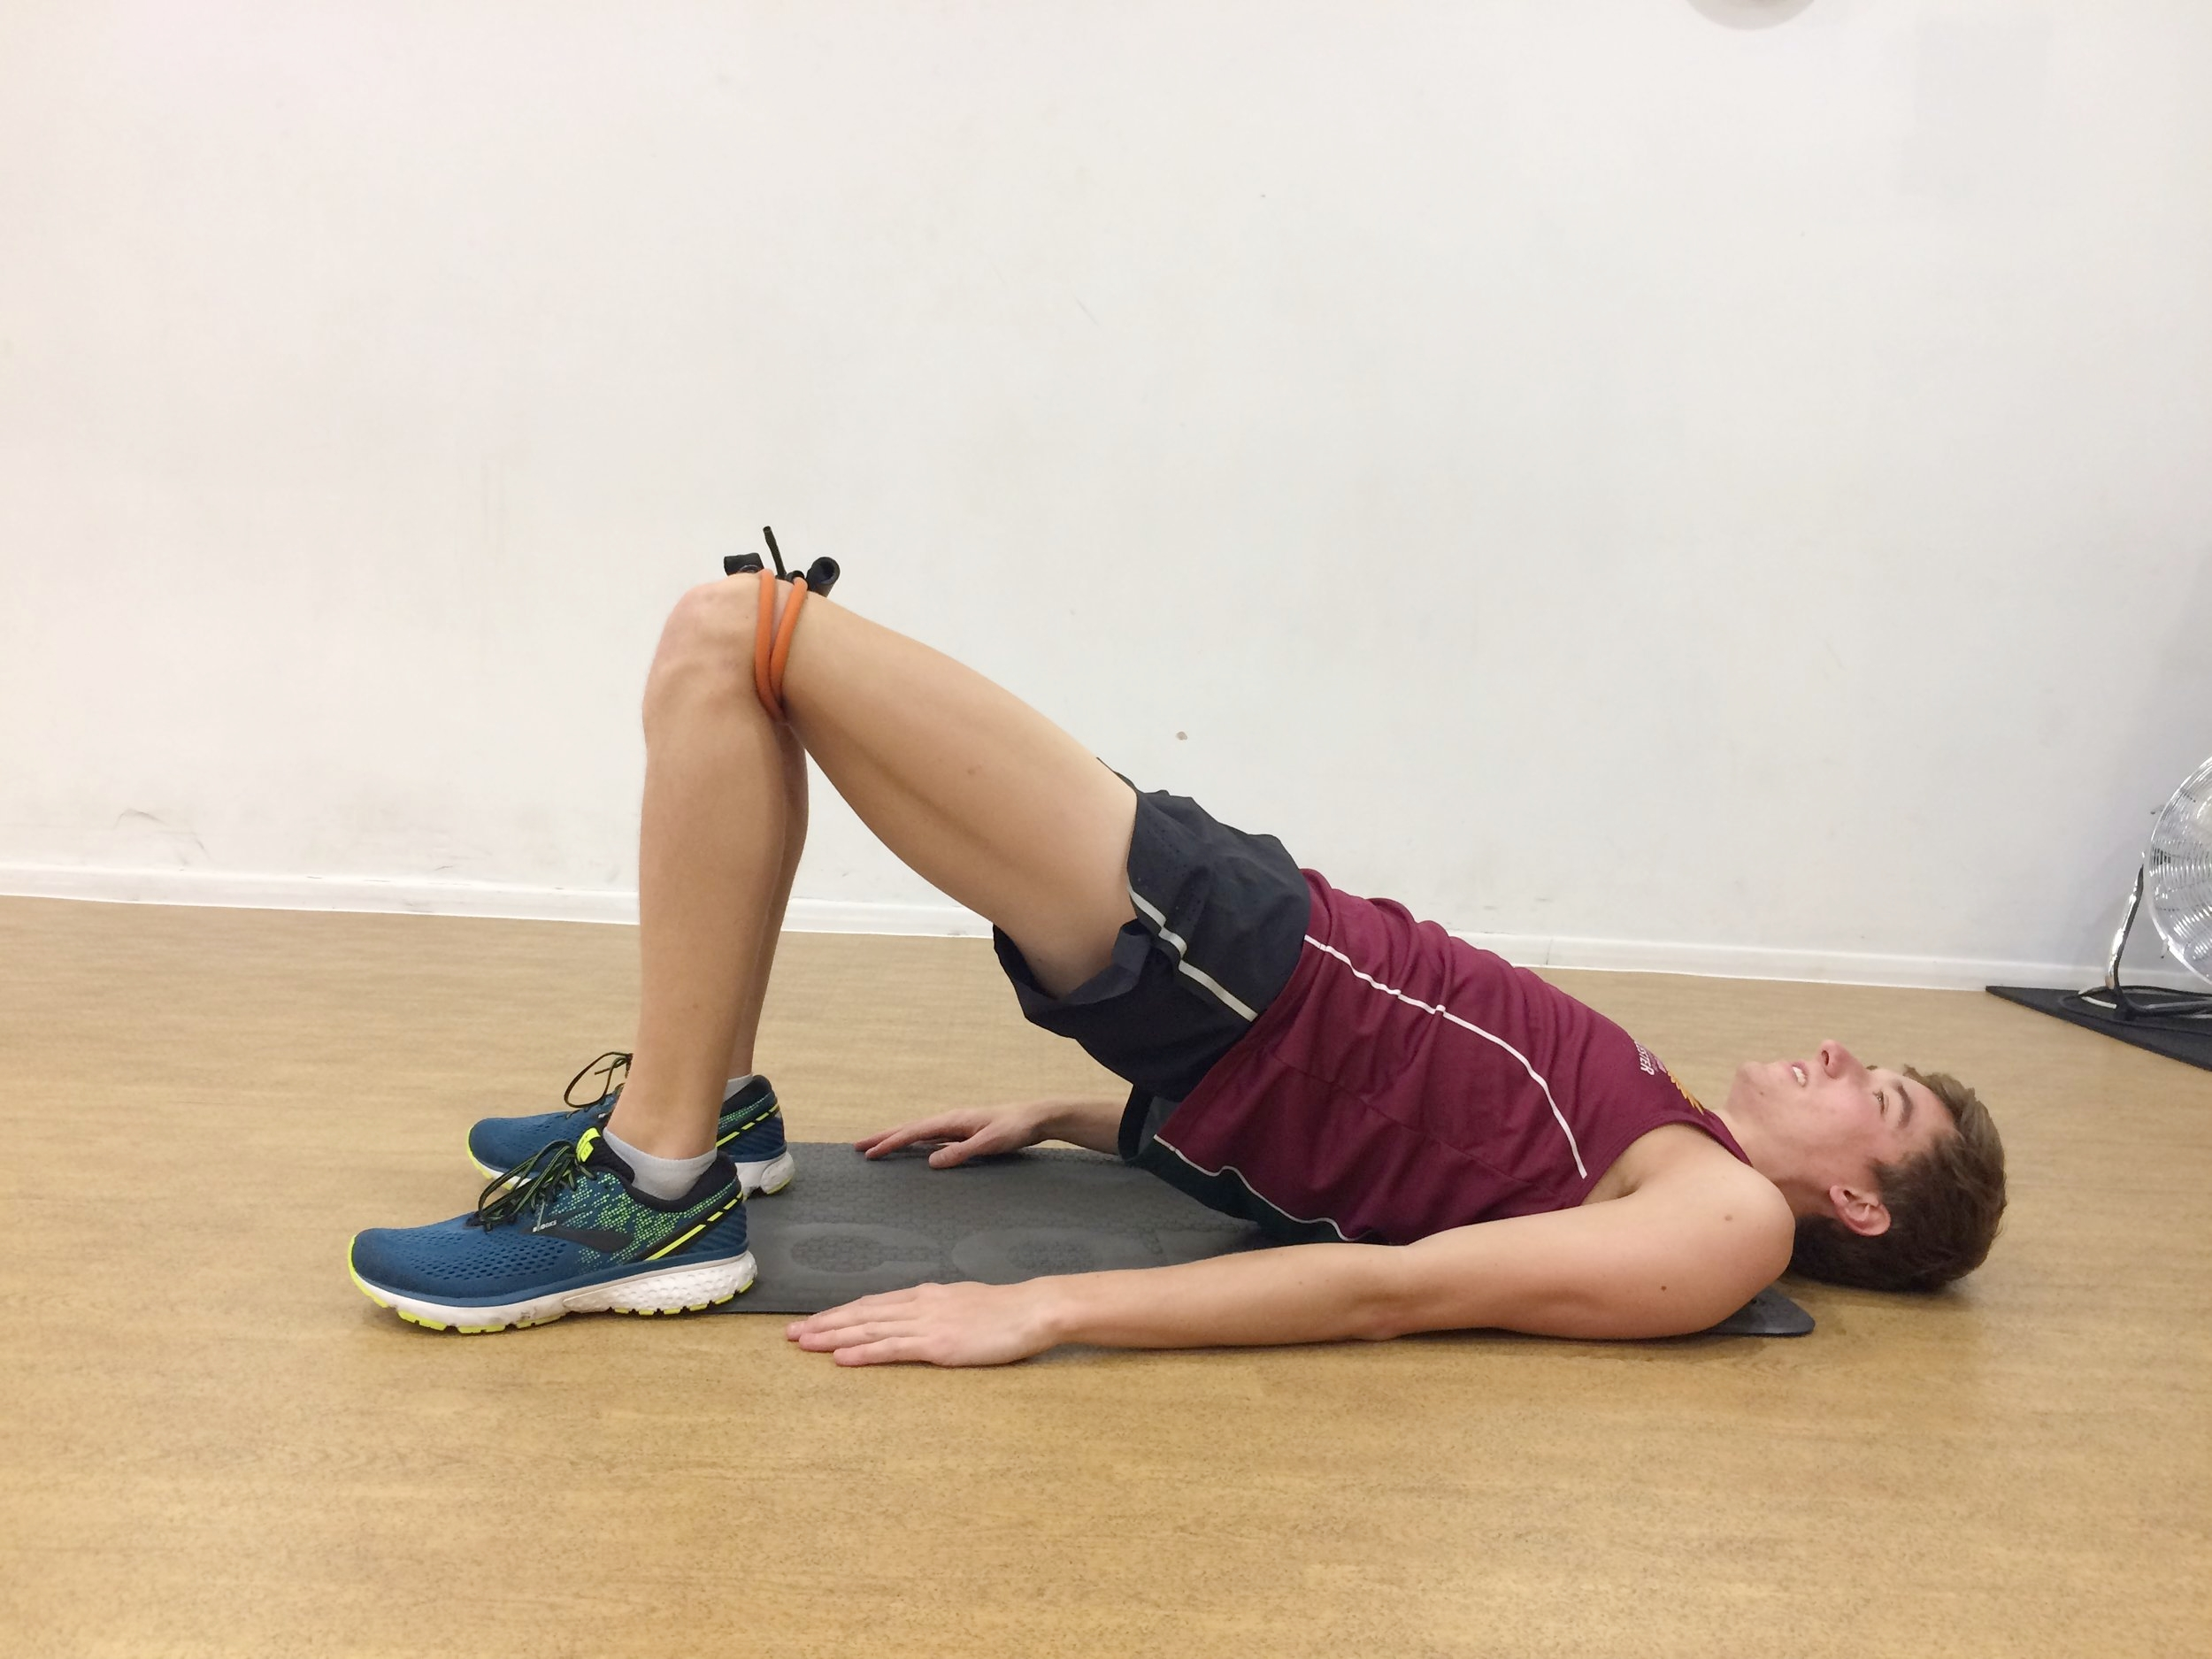 2) Glute bridge   12 reps  Press through the heels. Push hips upward. To increase difficulty use weight on hips / raise one leg of floor